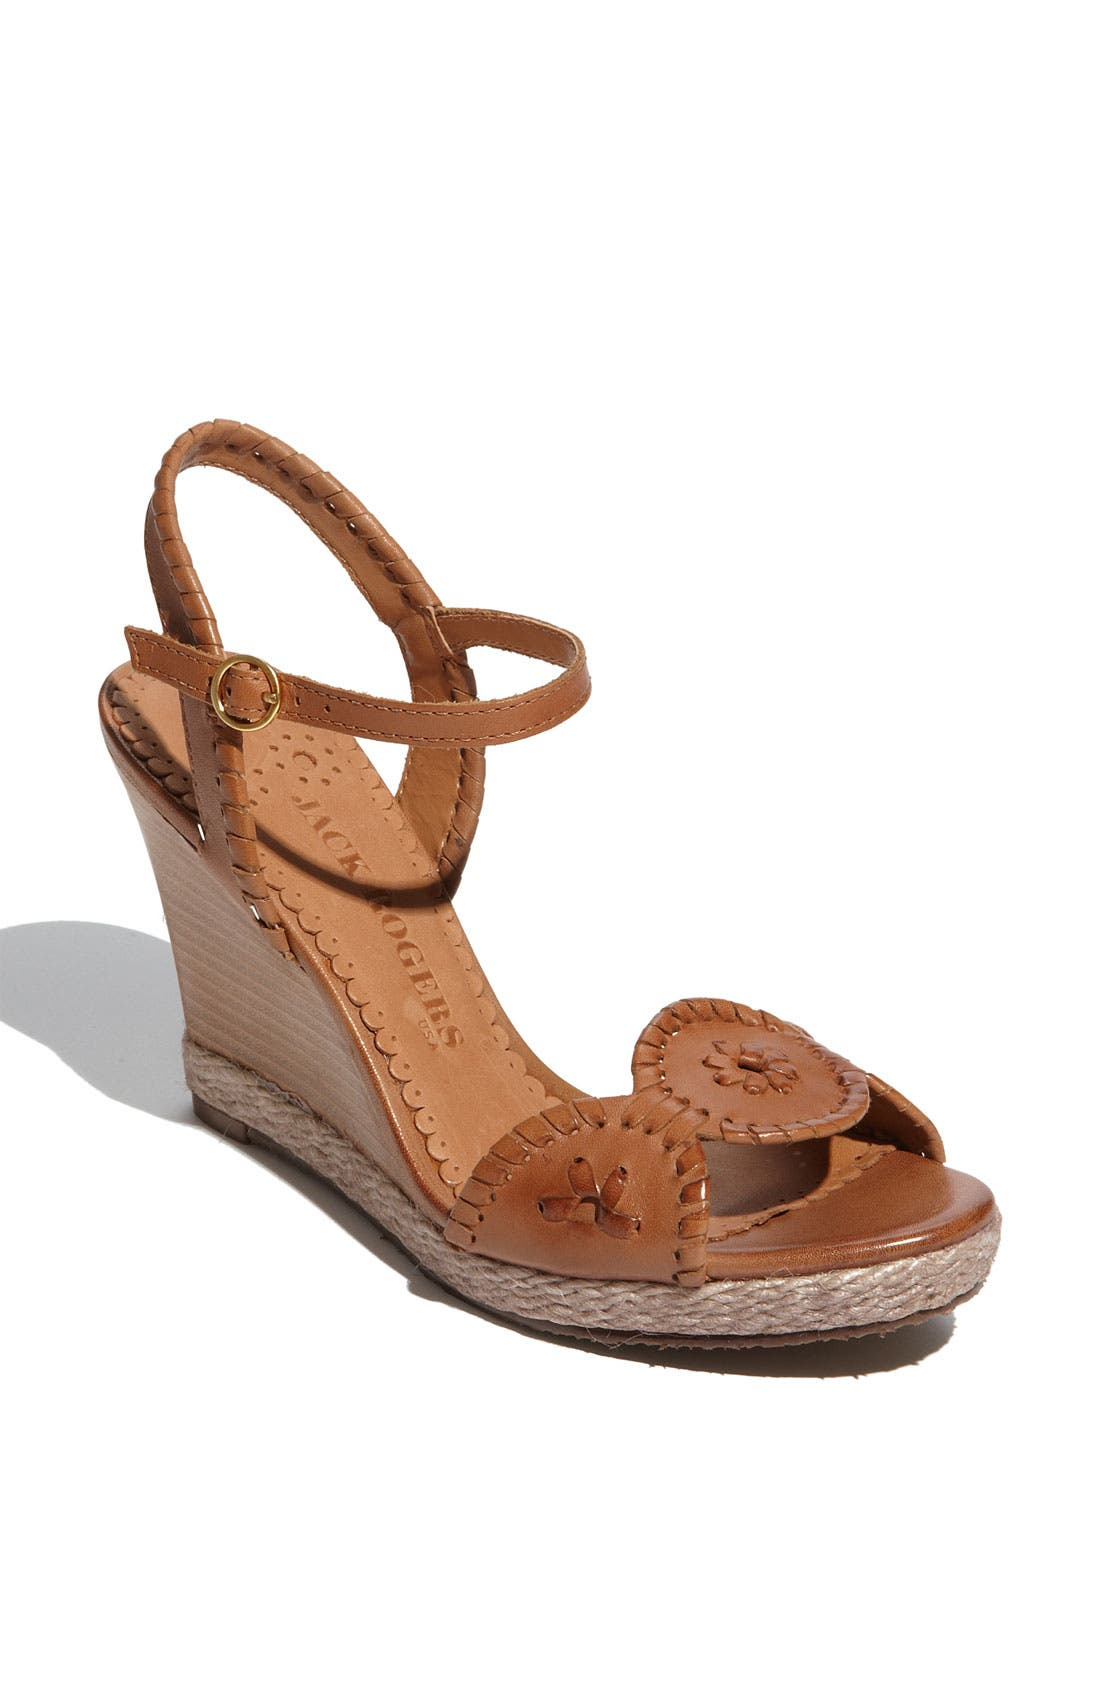 Main Image - JACK ROGERS CLARE ROPE WEDGE